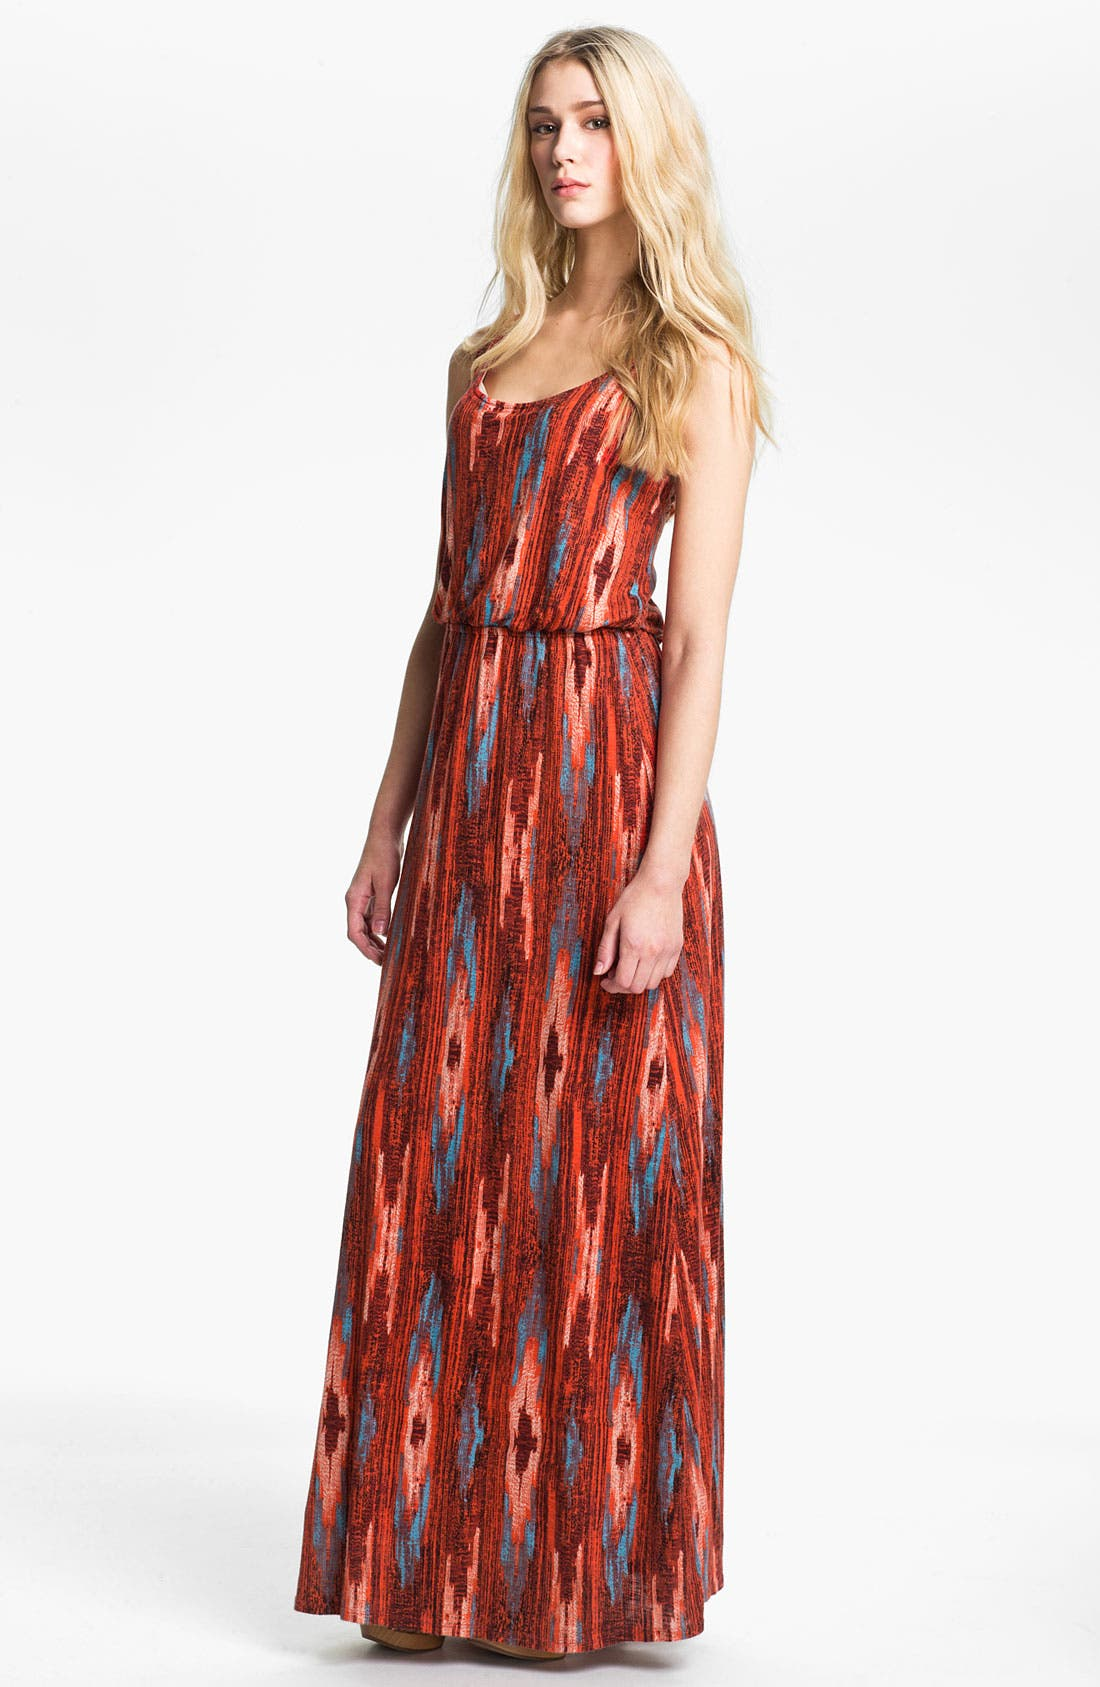 Alternate Image 1 Selected - Ella Moss 'Santa Fe' Print Maxi Dress